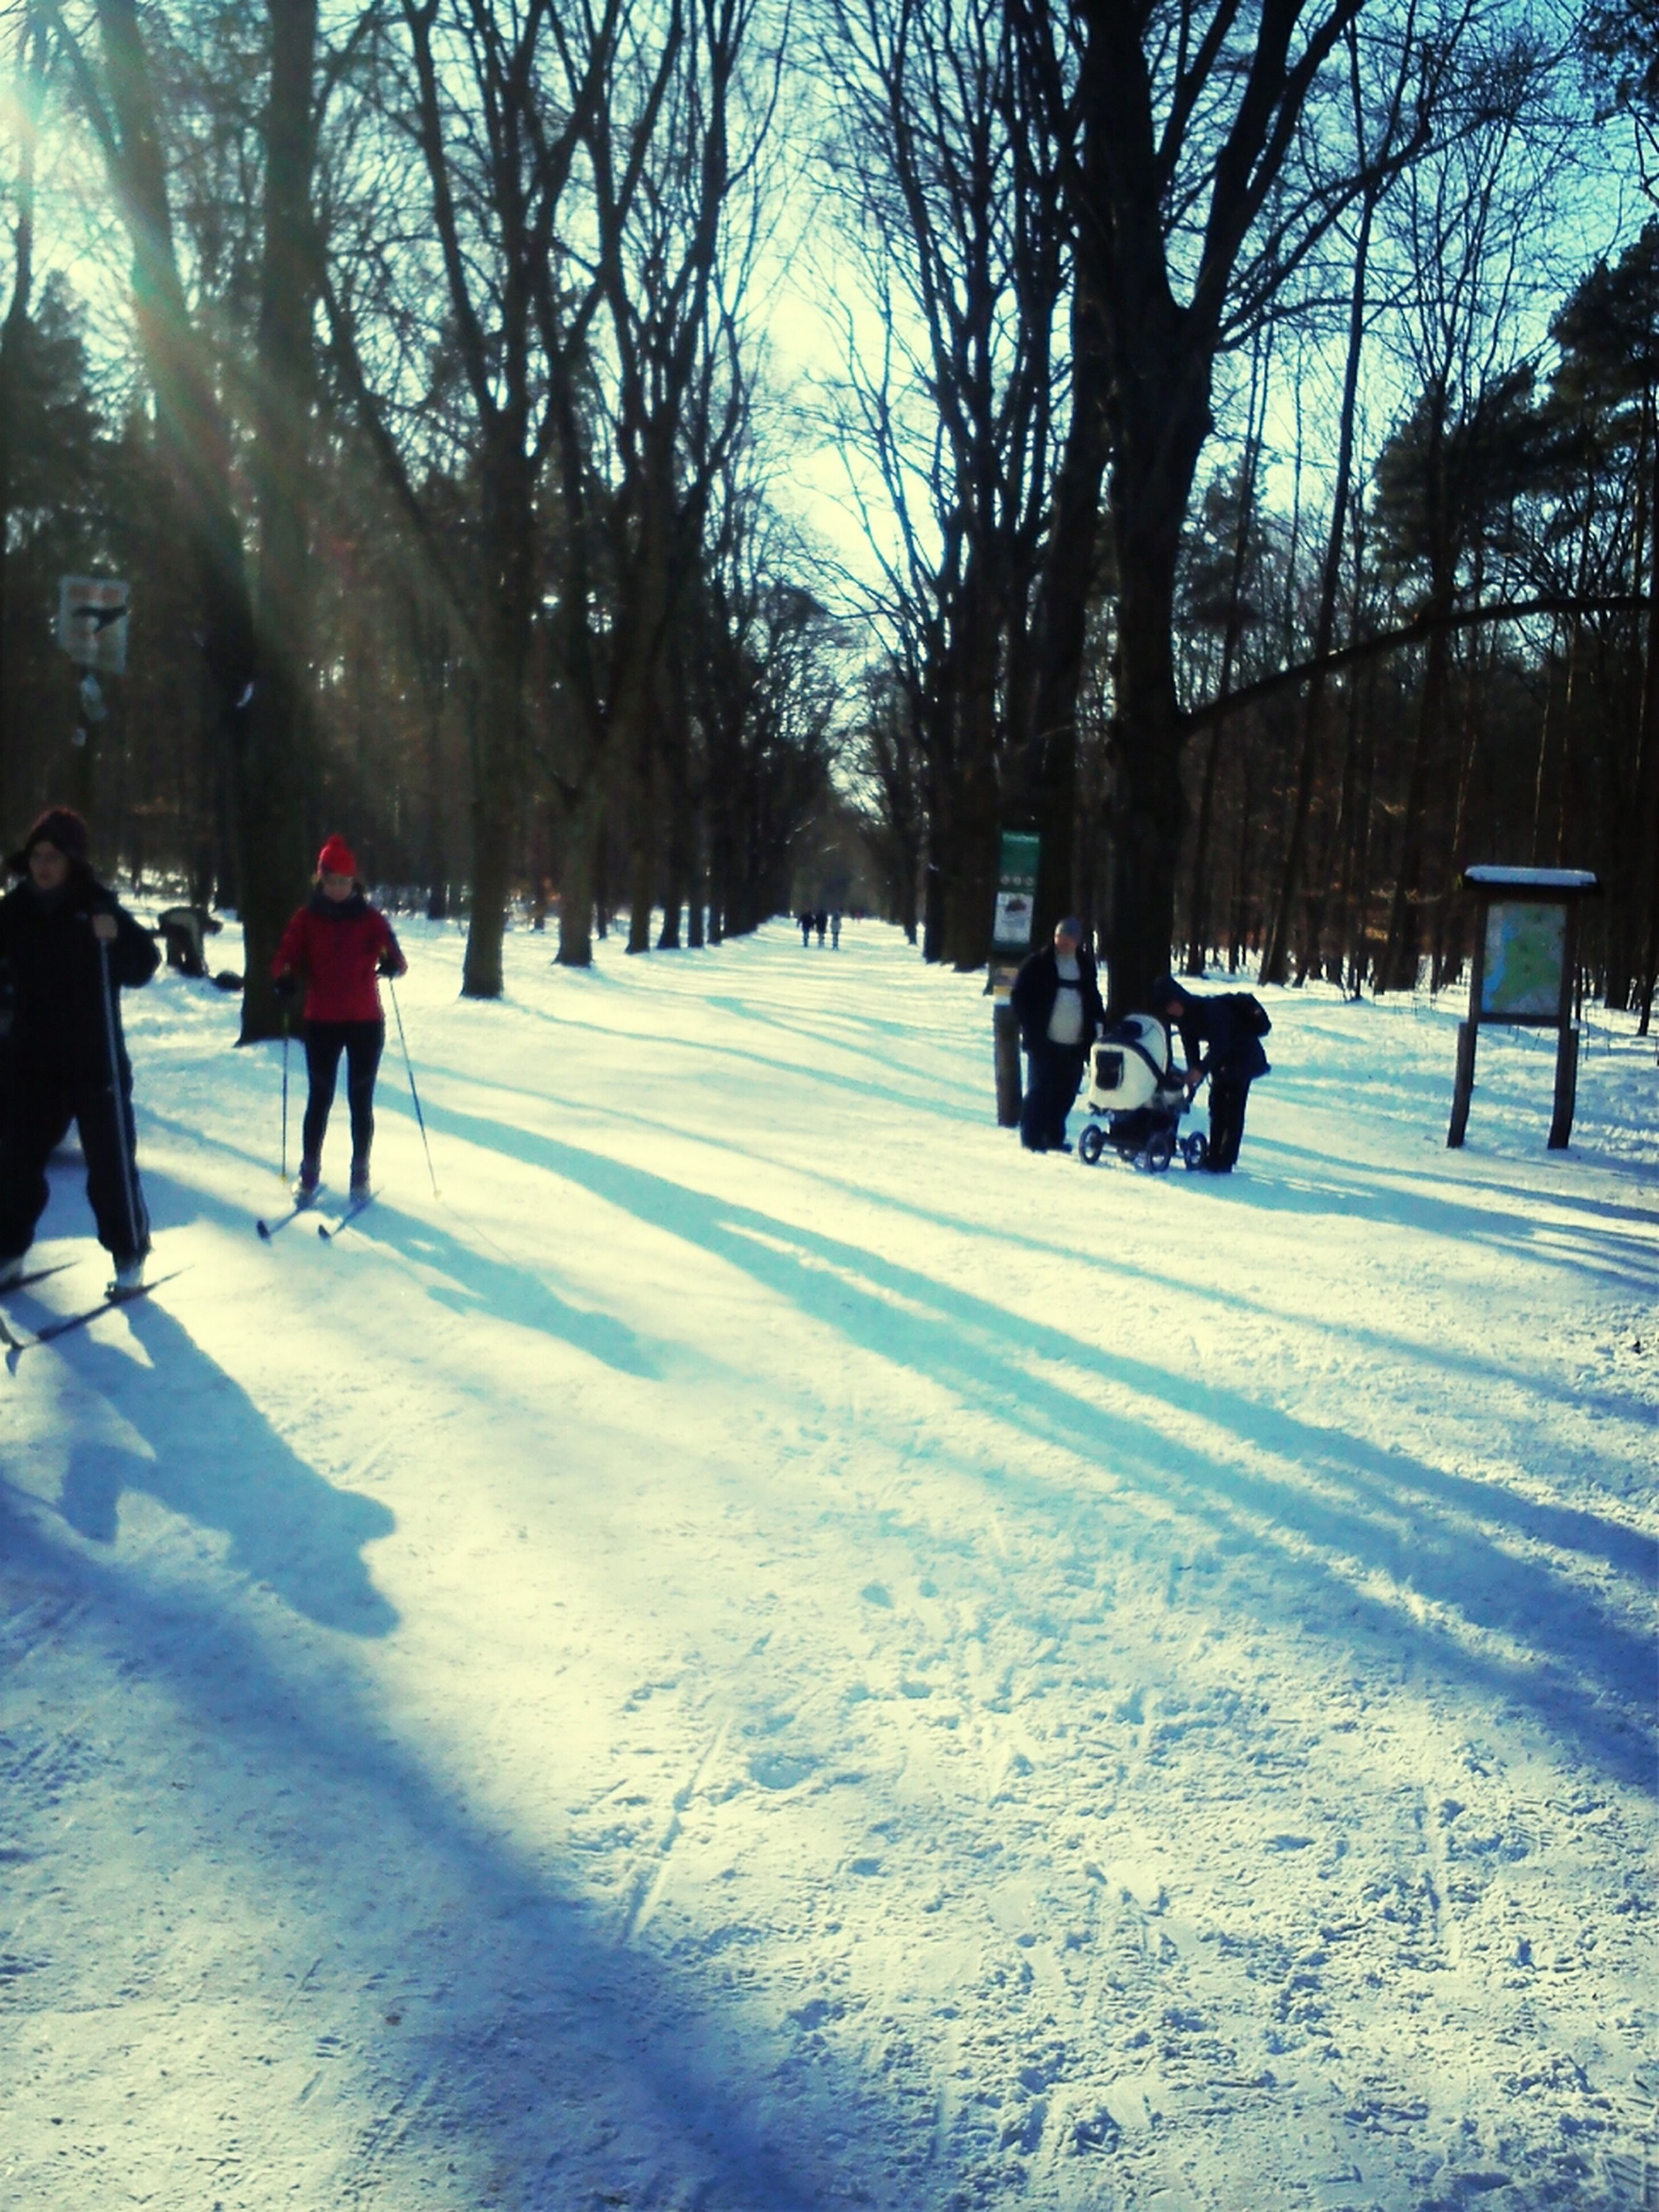 snow, winter, cold temperature, tree, walking, leisure activity, lifestyles, season, men, full length, the way forward, weather, shadow, sunlight, transportation, bare tree, white color, rear view, person